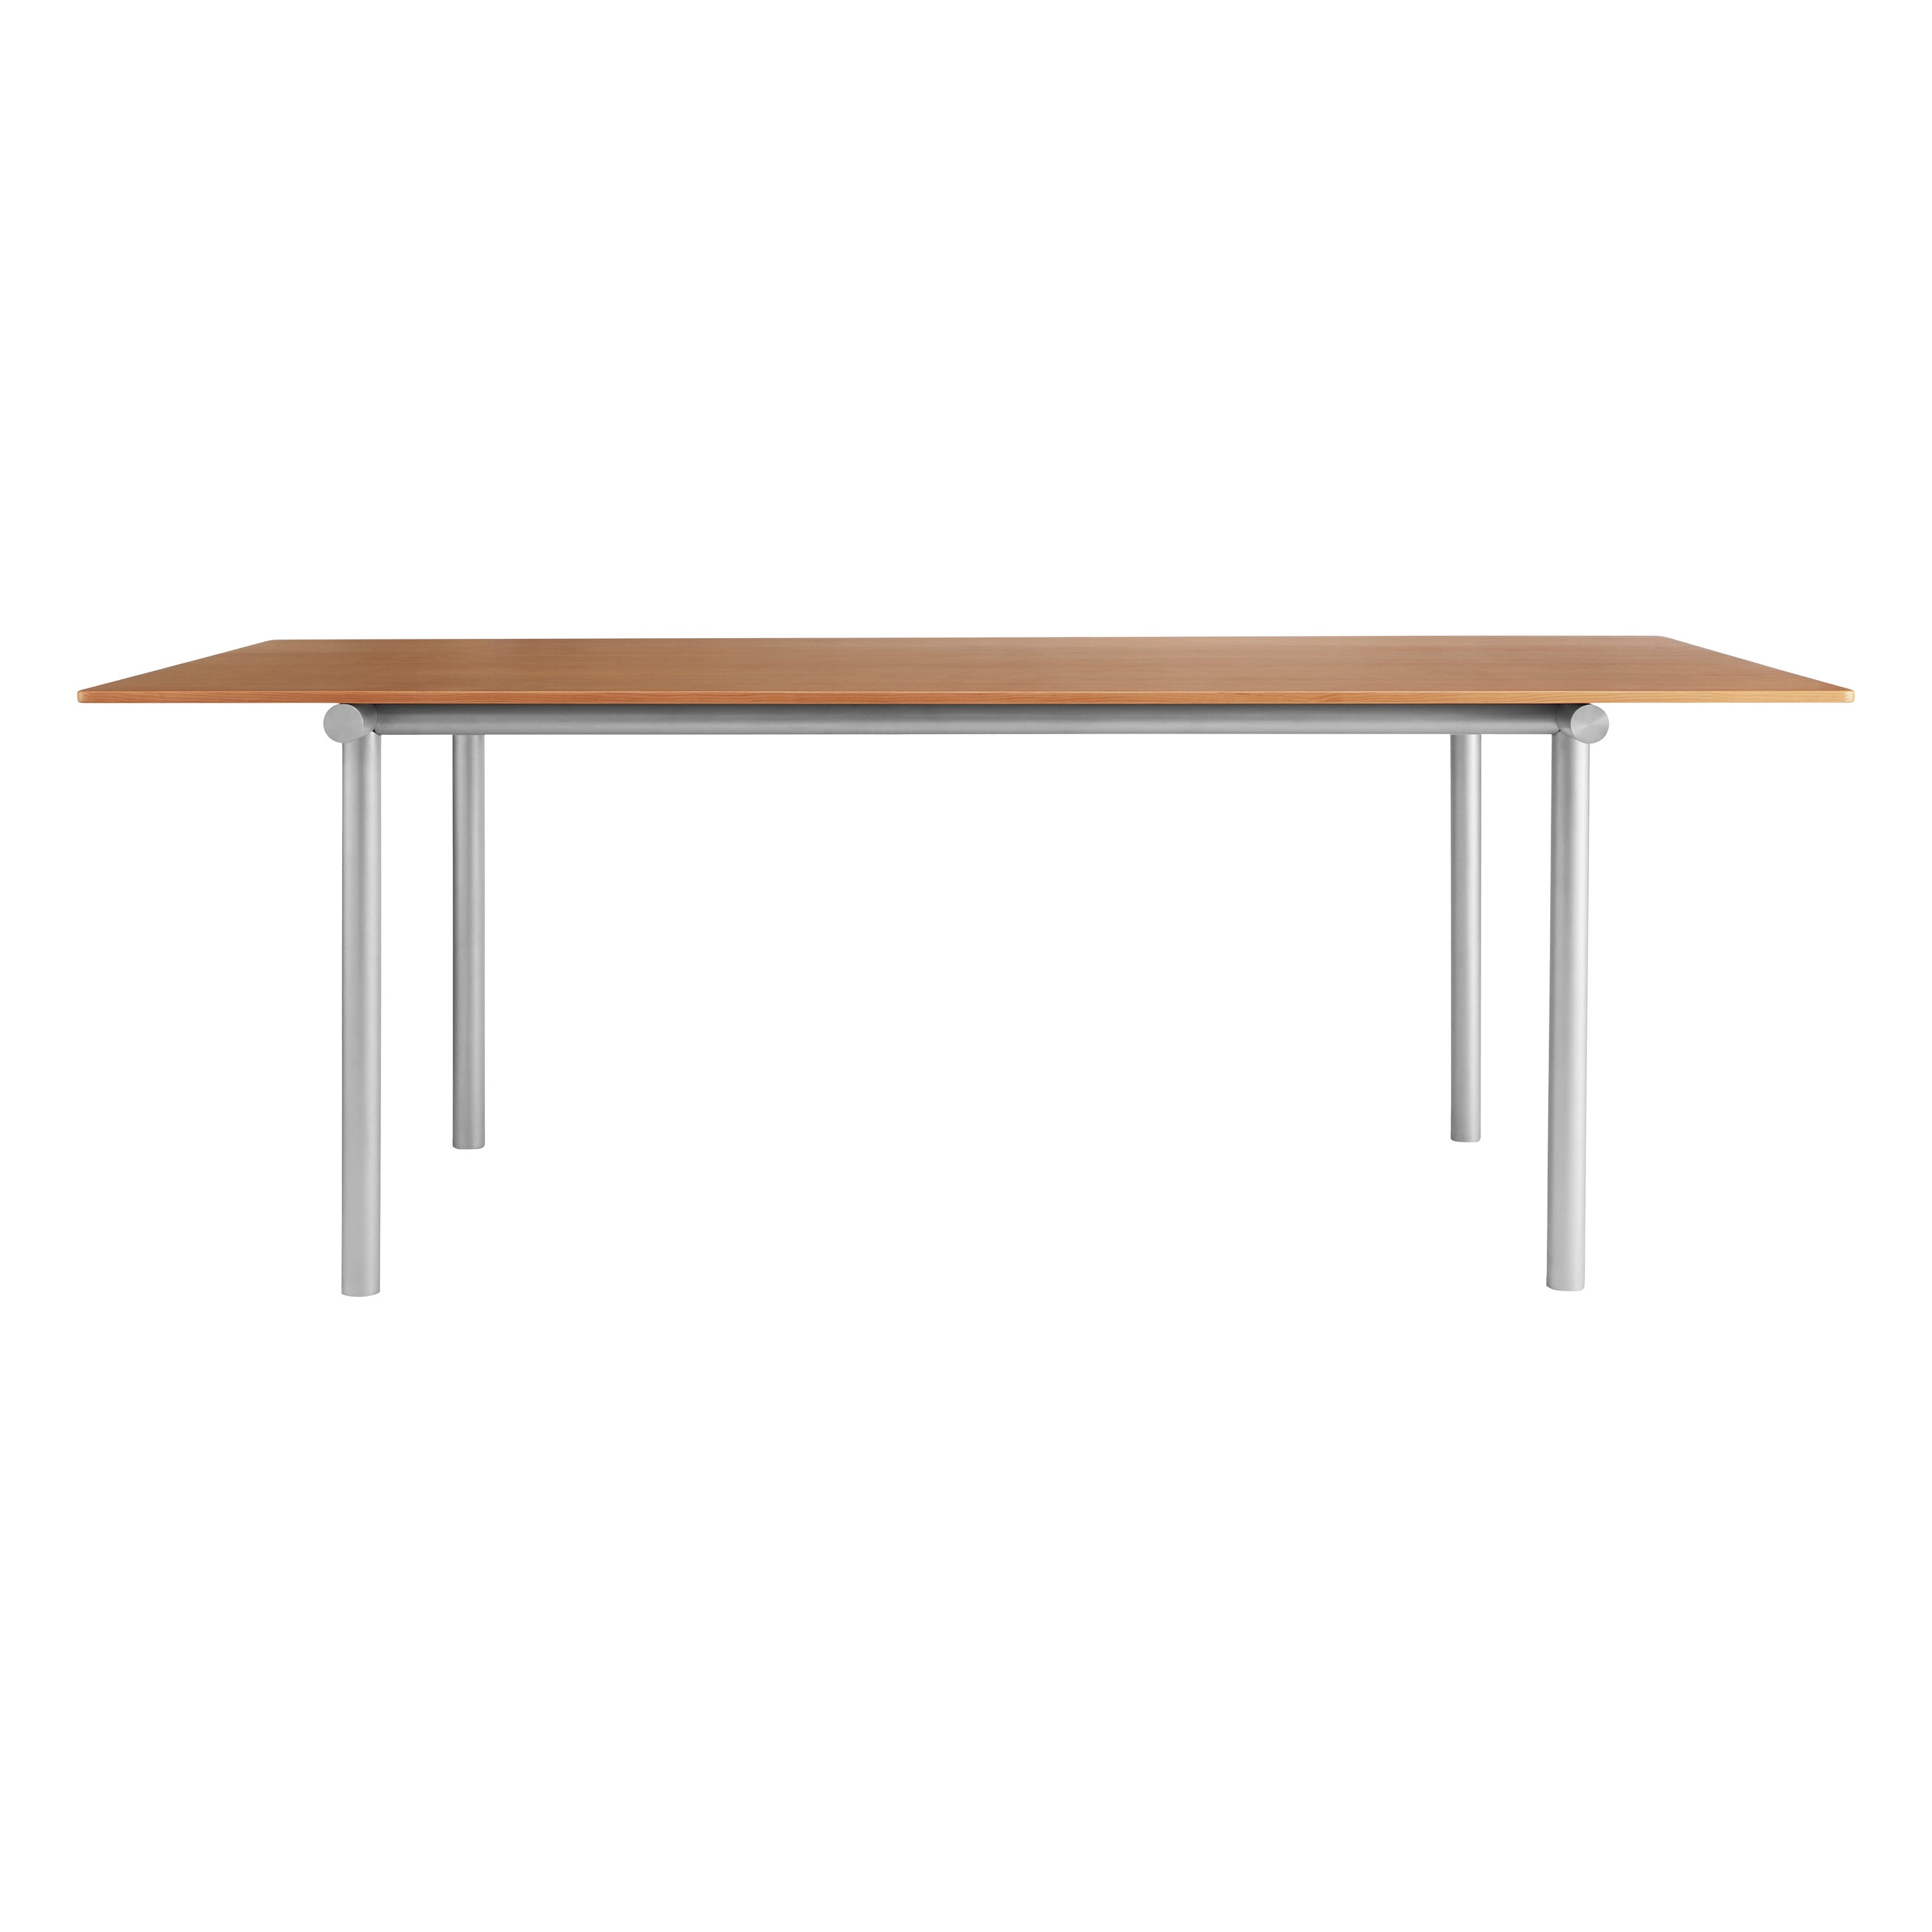 Tubby Tube Large Dining Table with Aluminum Frame by Faye Toogood